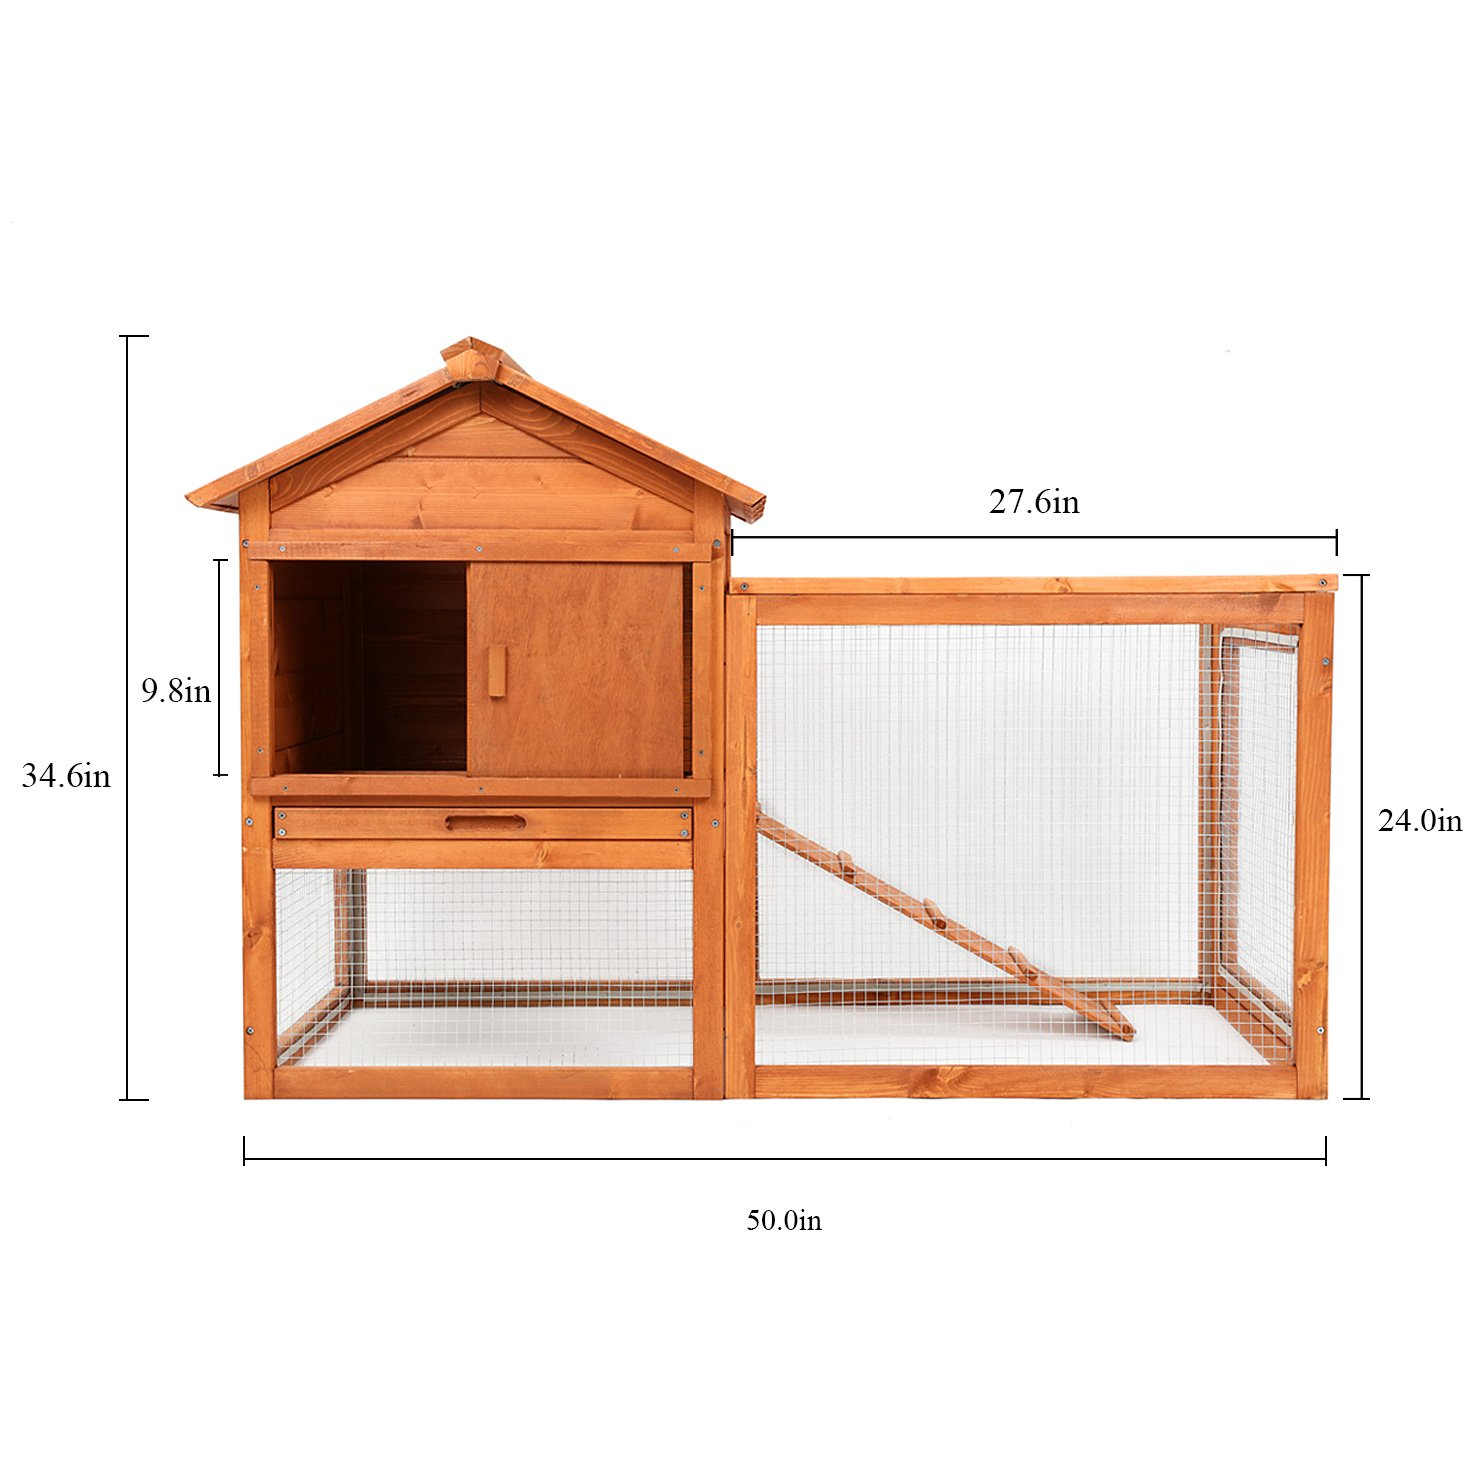 Magshion Wooden Chicken Coop Rabbit Bunny Hutch Pet Cage Wood Small Animal Poultry Cage Run Indoor by Magshion (Image #2)